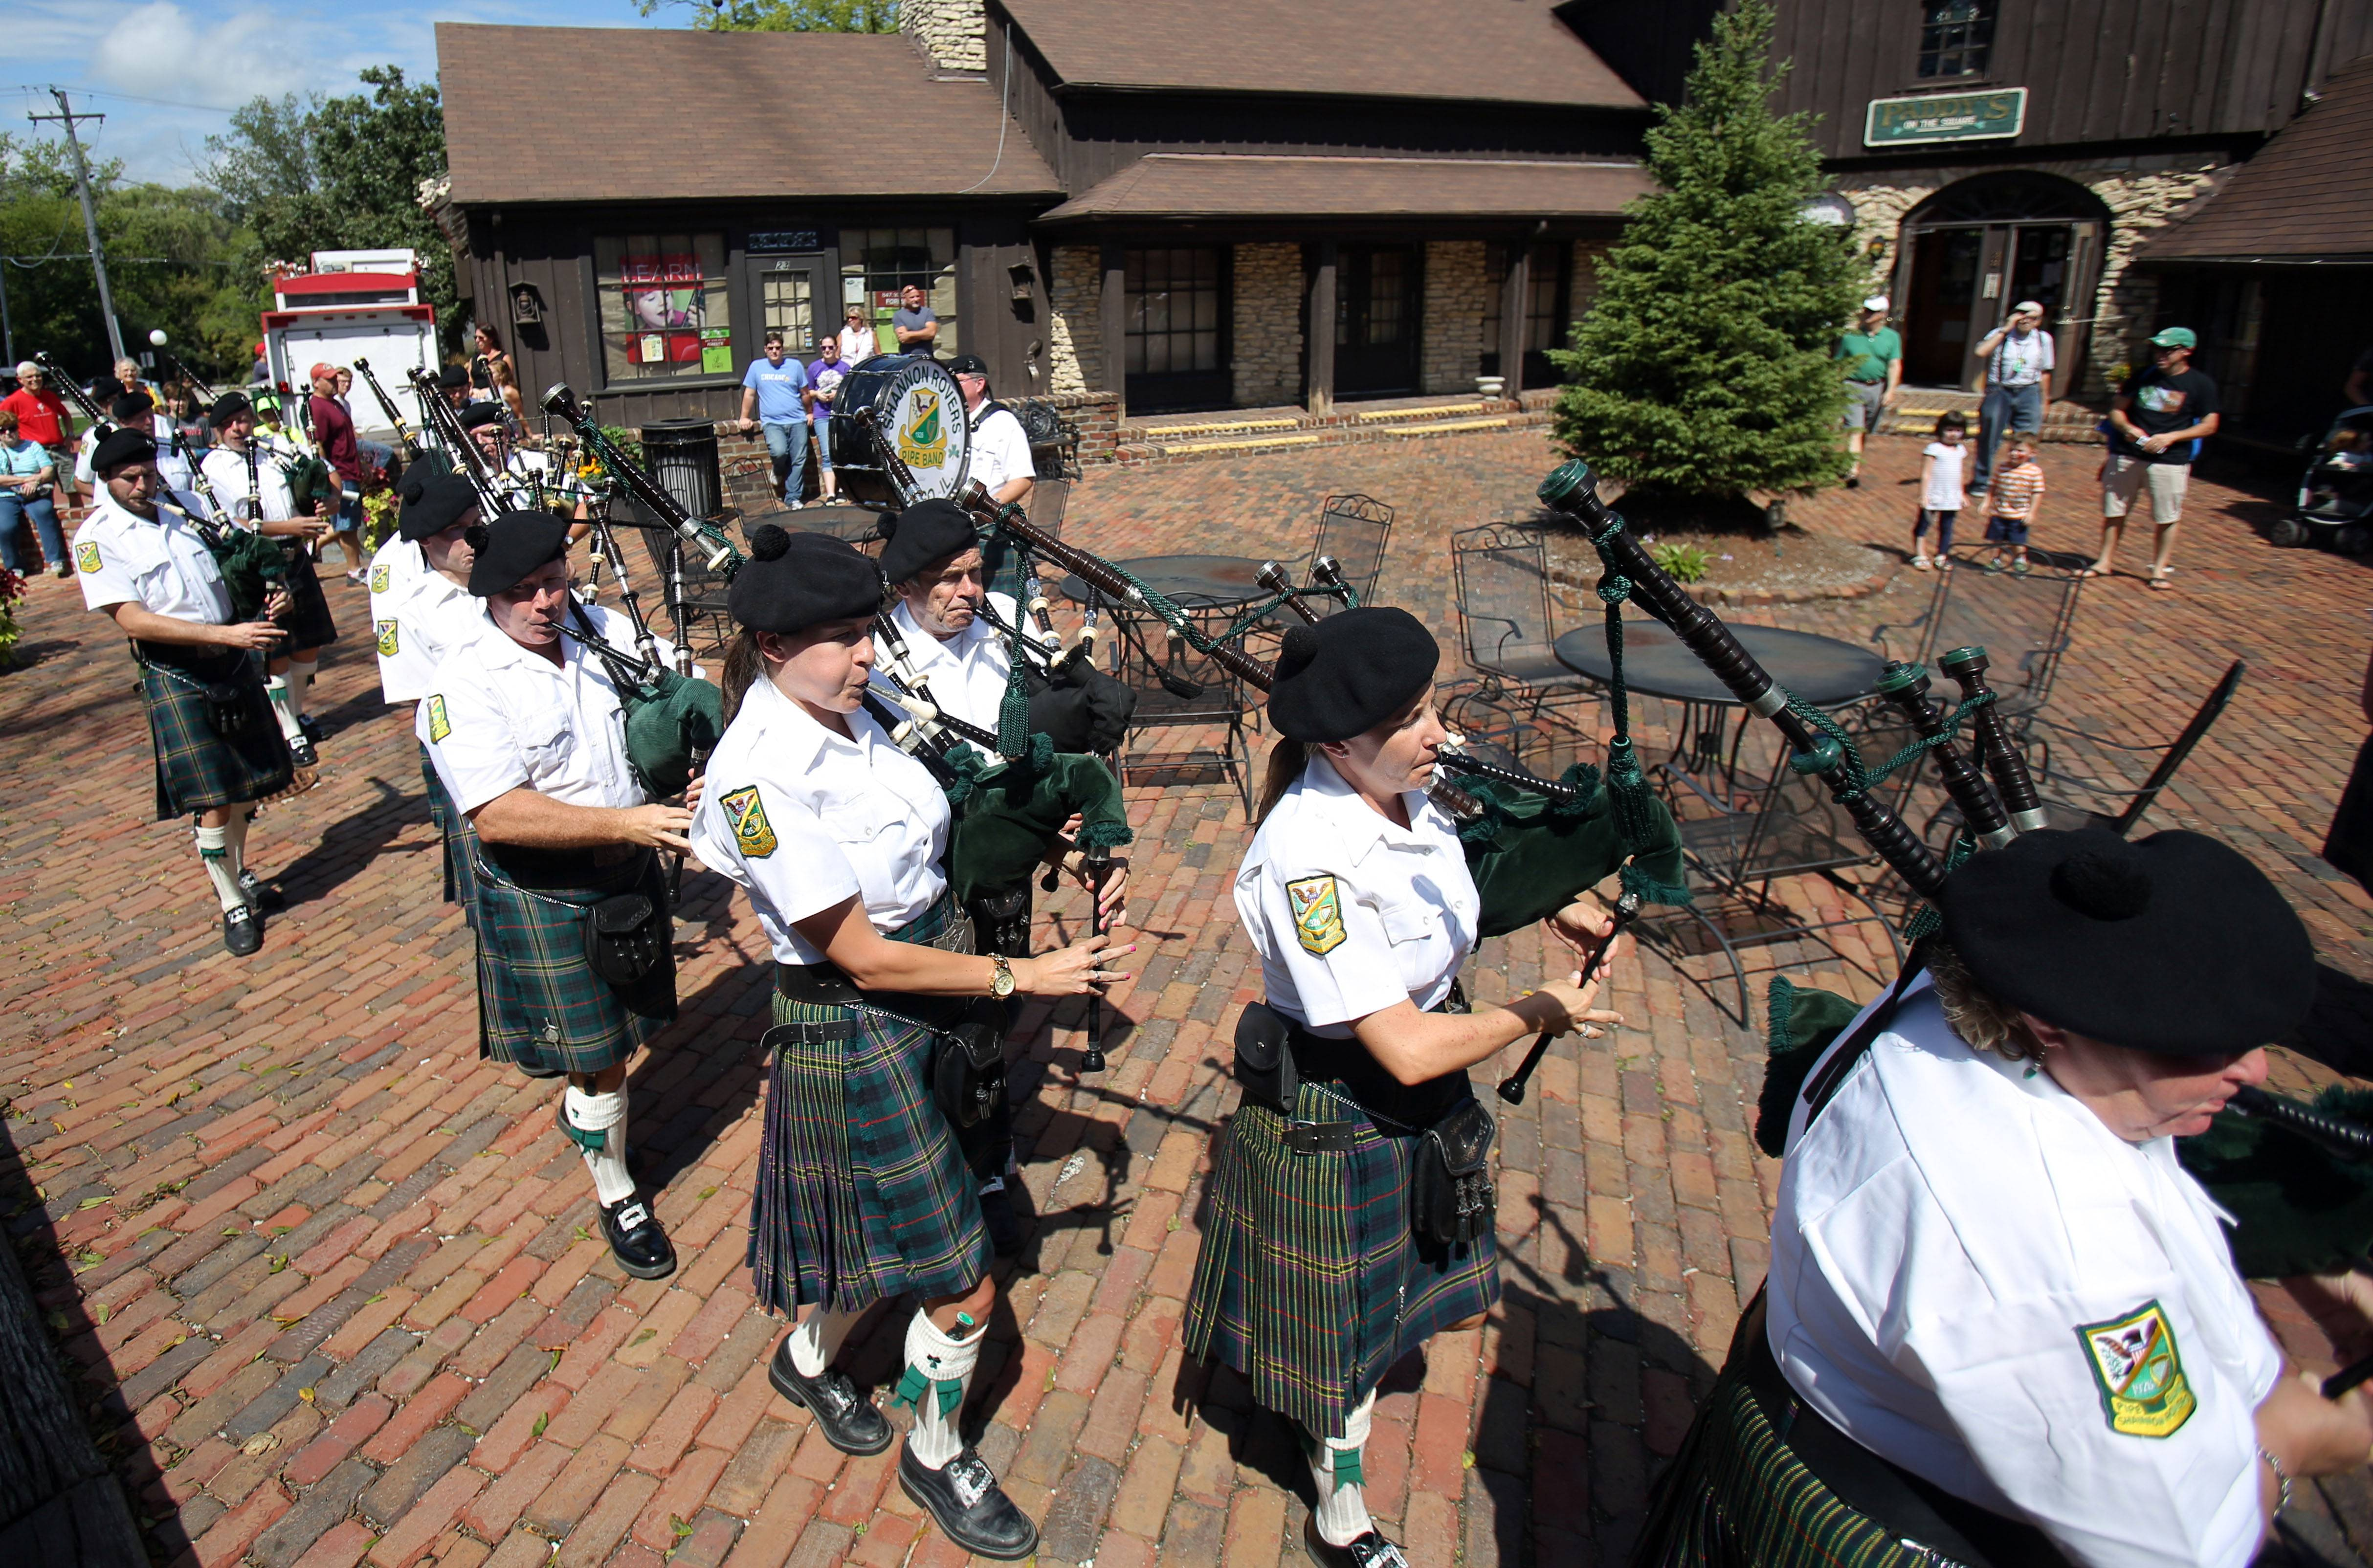 The Shannon Rovers march through the square during Irish Days in downtown Long Grove.